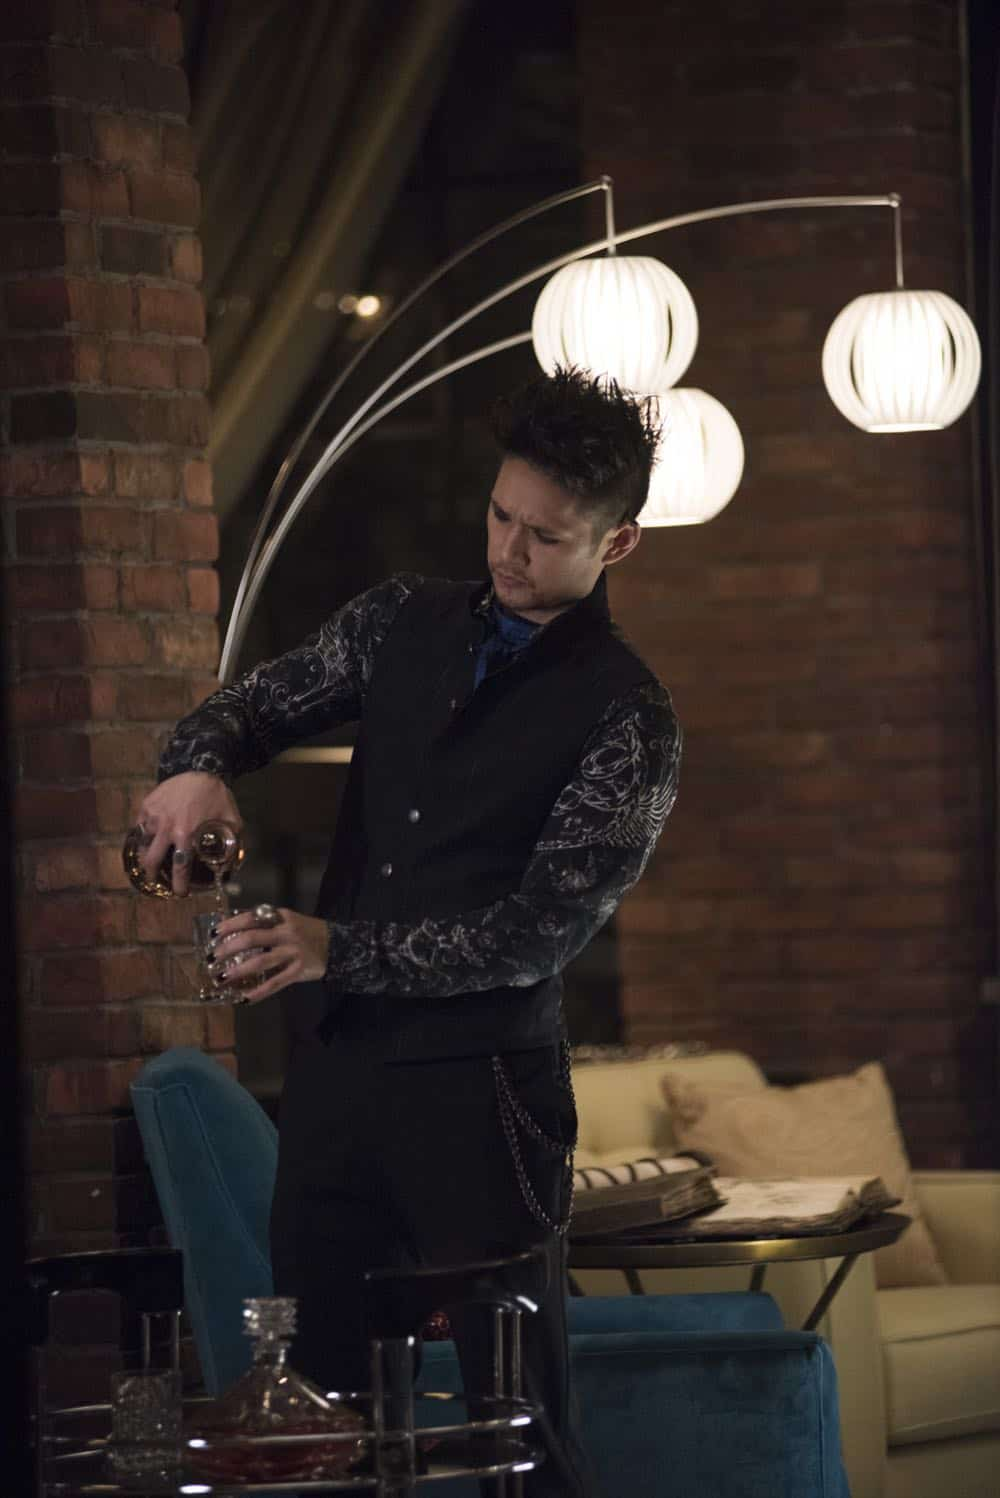 """SHADOWHUNTERS - """"Salt In The Wound"""" - With the Owl's identity revealed, Alec, Isabelle, and Clary head to Alicante to try and find a way to stop him. Luke and Simon team up to track Lilith's  latest possible victim. Maia reflects on her past. This episode of """"Shadowhunters"""" airs Tuesday, May 1 (8:00 - 9:00 p.m. EDT) on Freeform. (Freeform/John Medland) HARRY SHUM JR."""